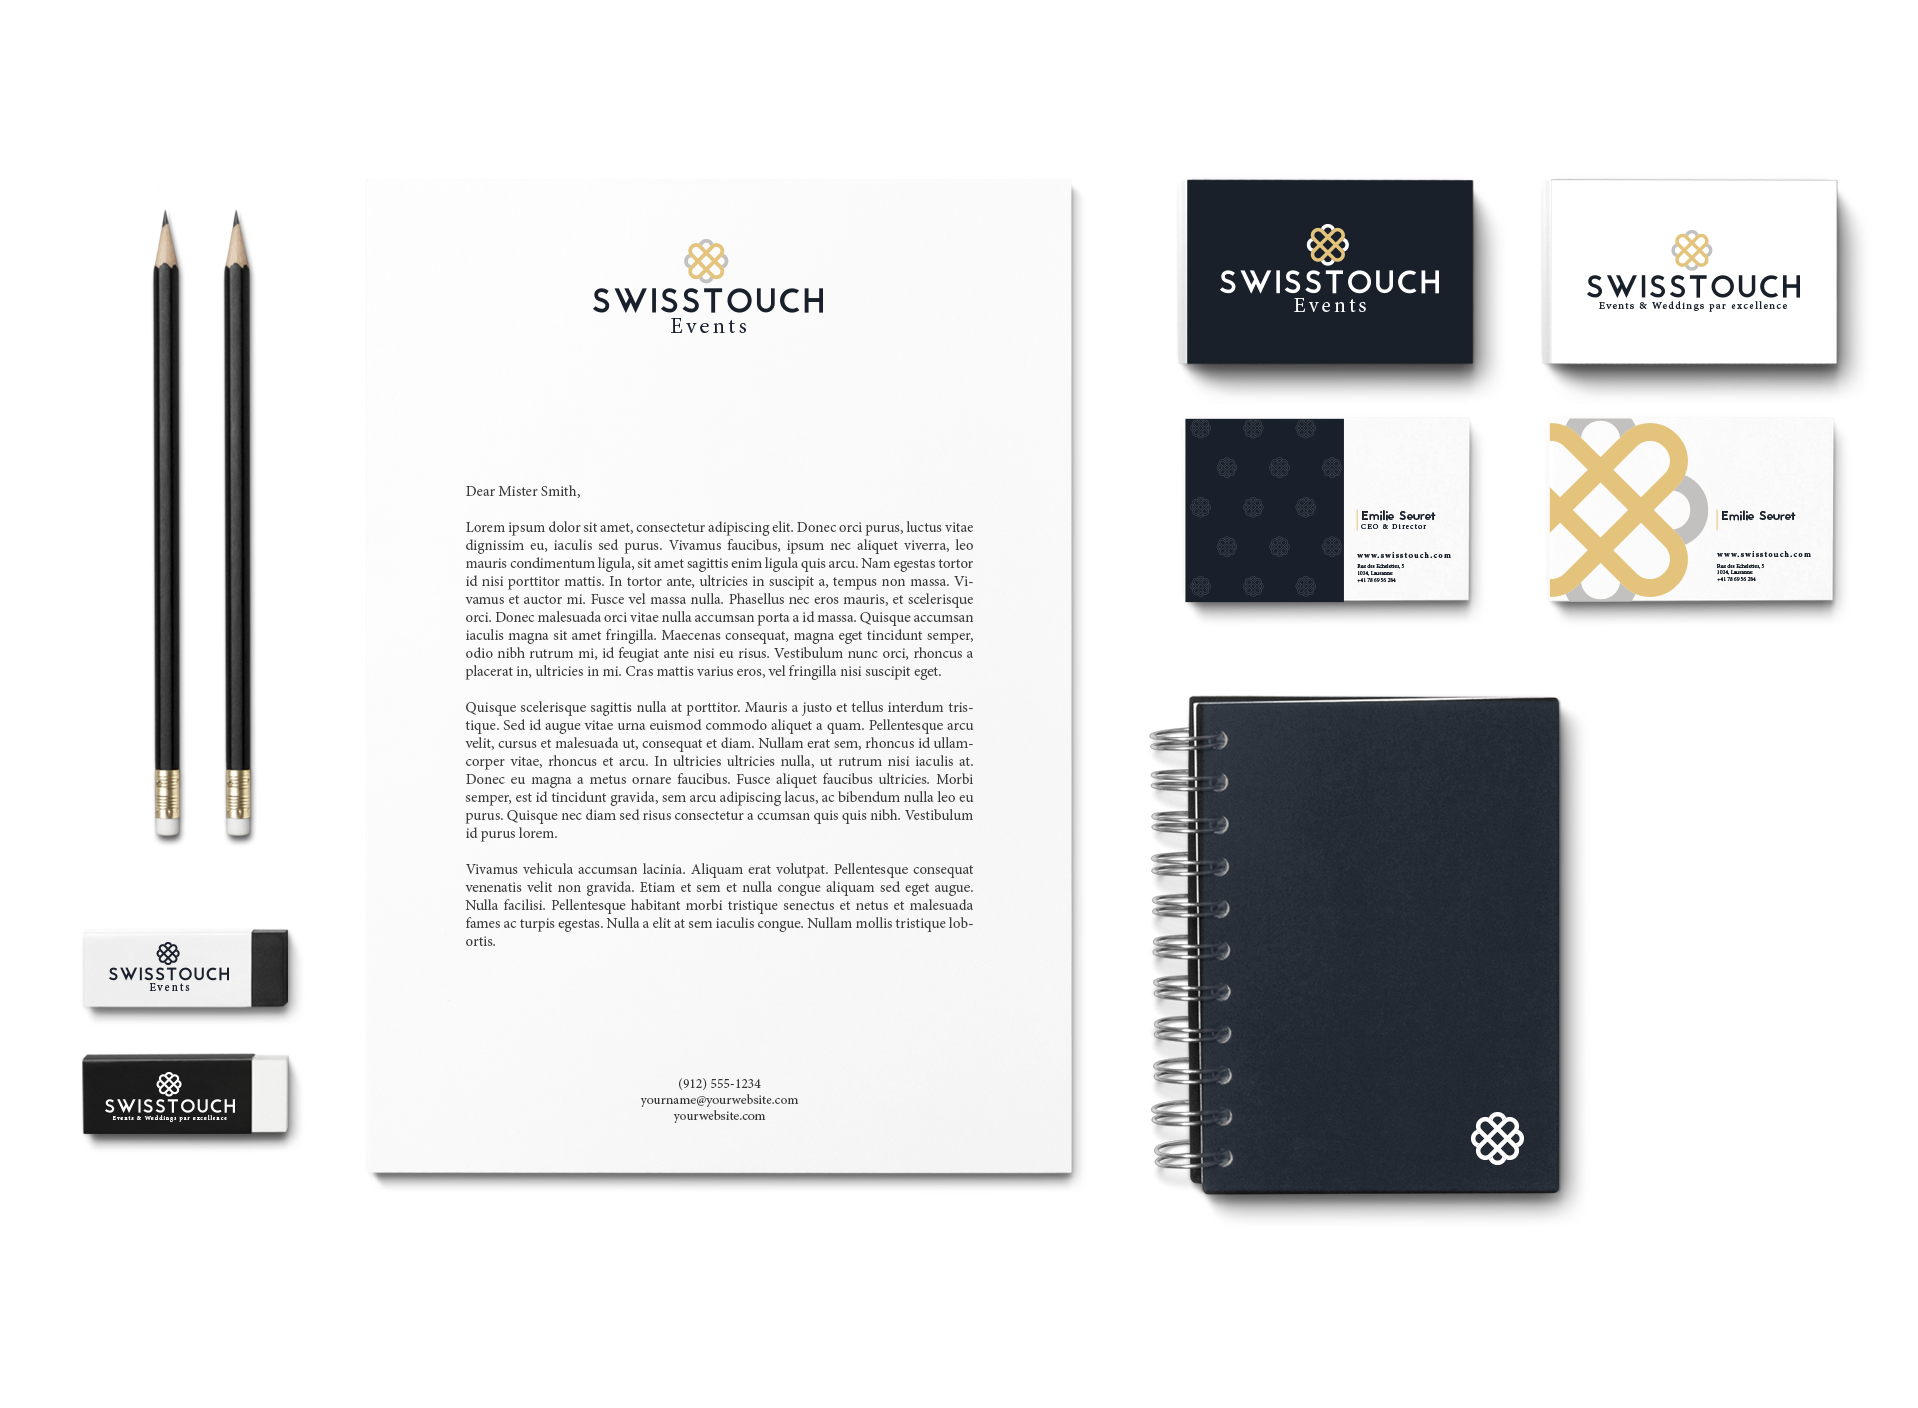 Swisstouch Branding Mock-Up